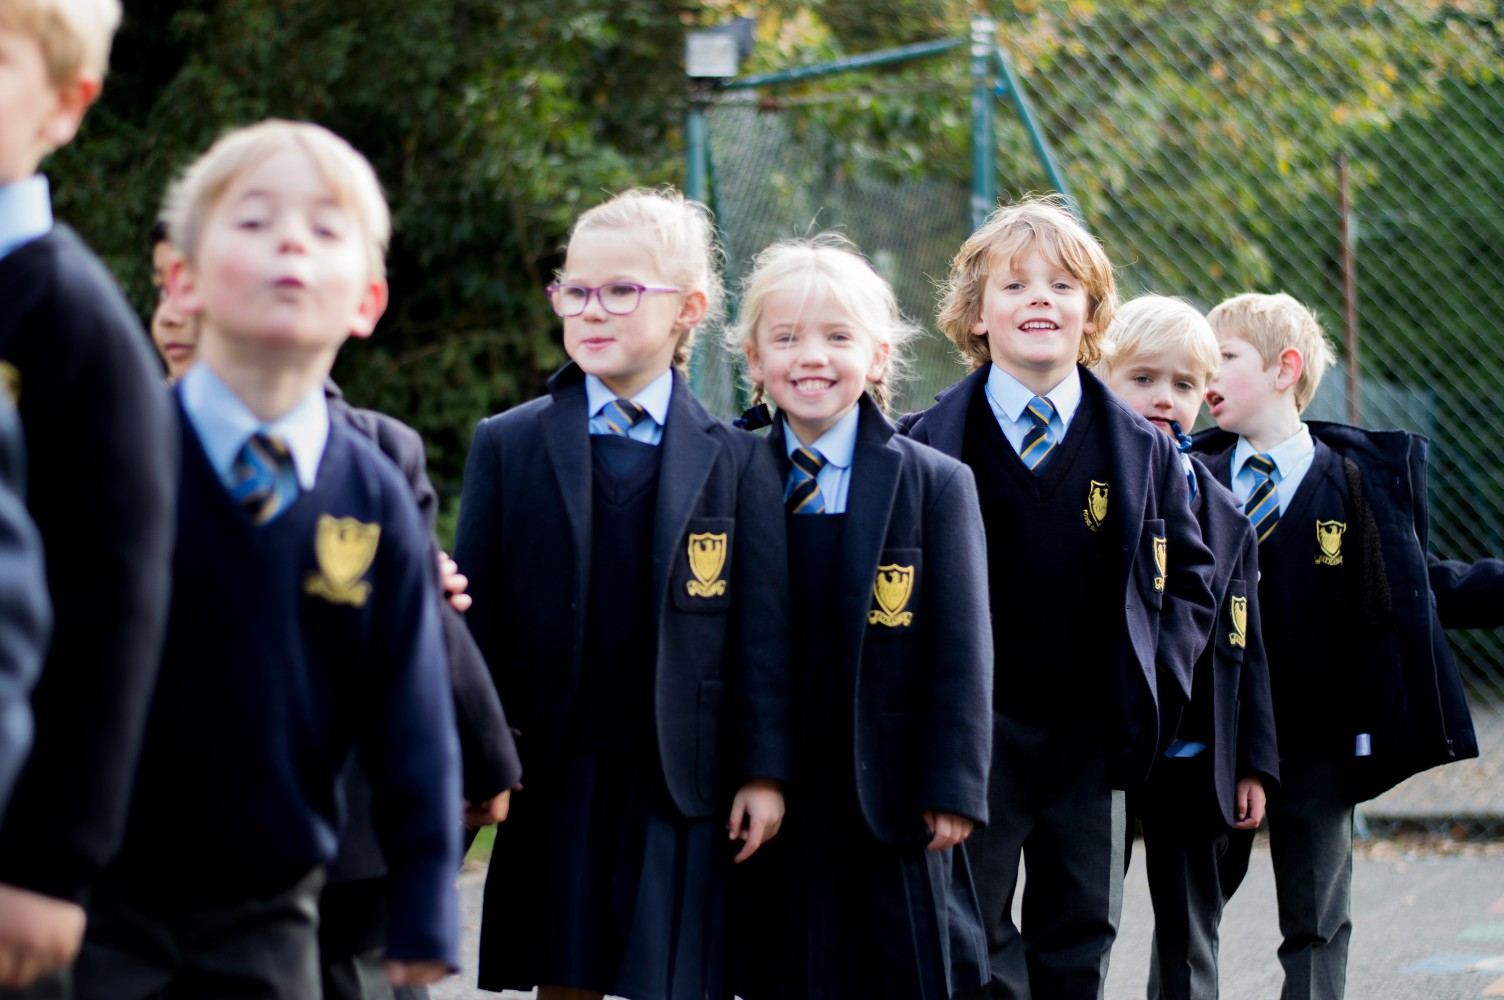 Independent school for children aged two to eleven